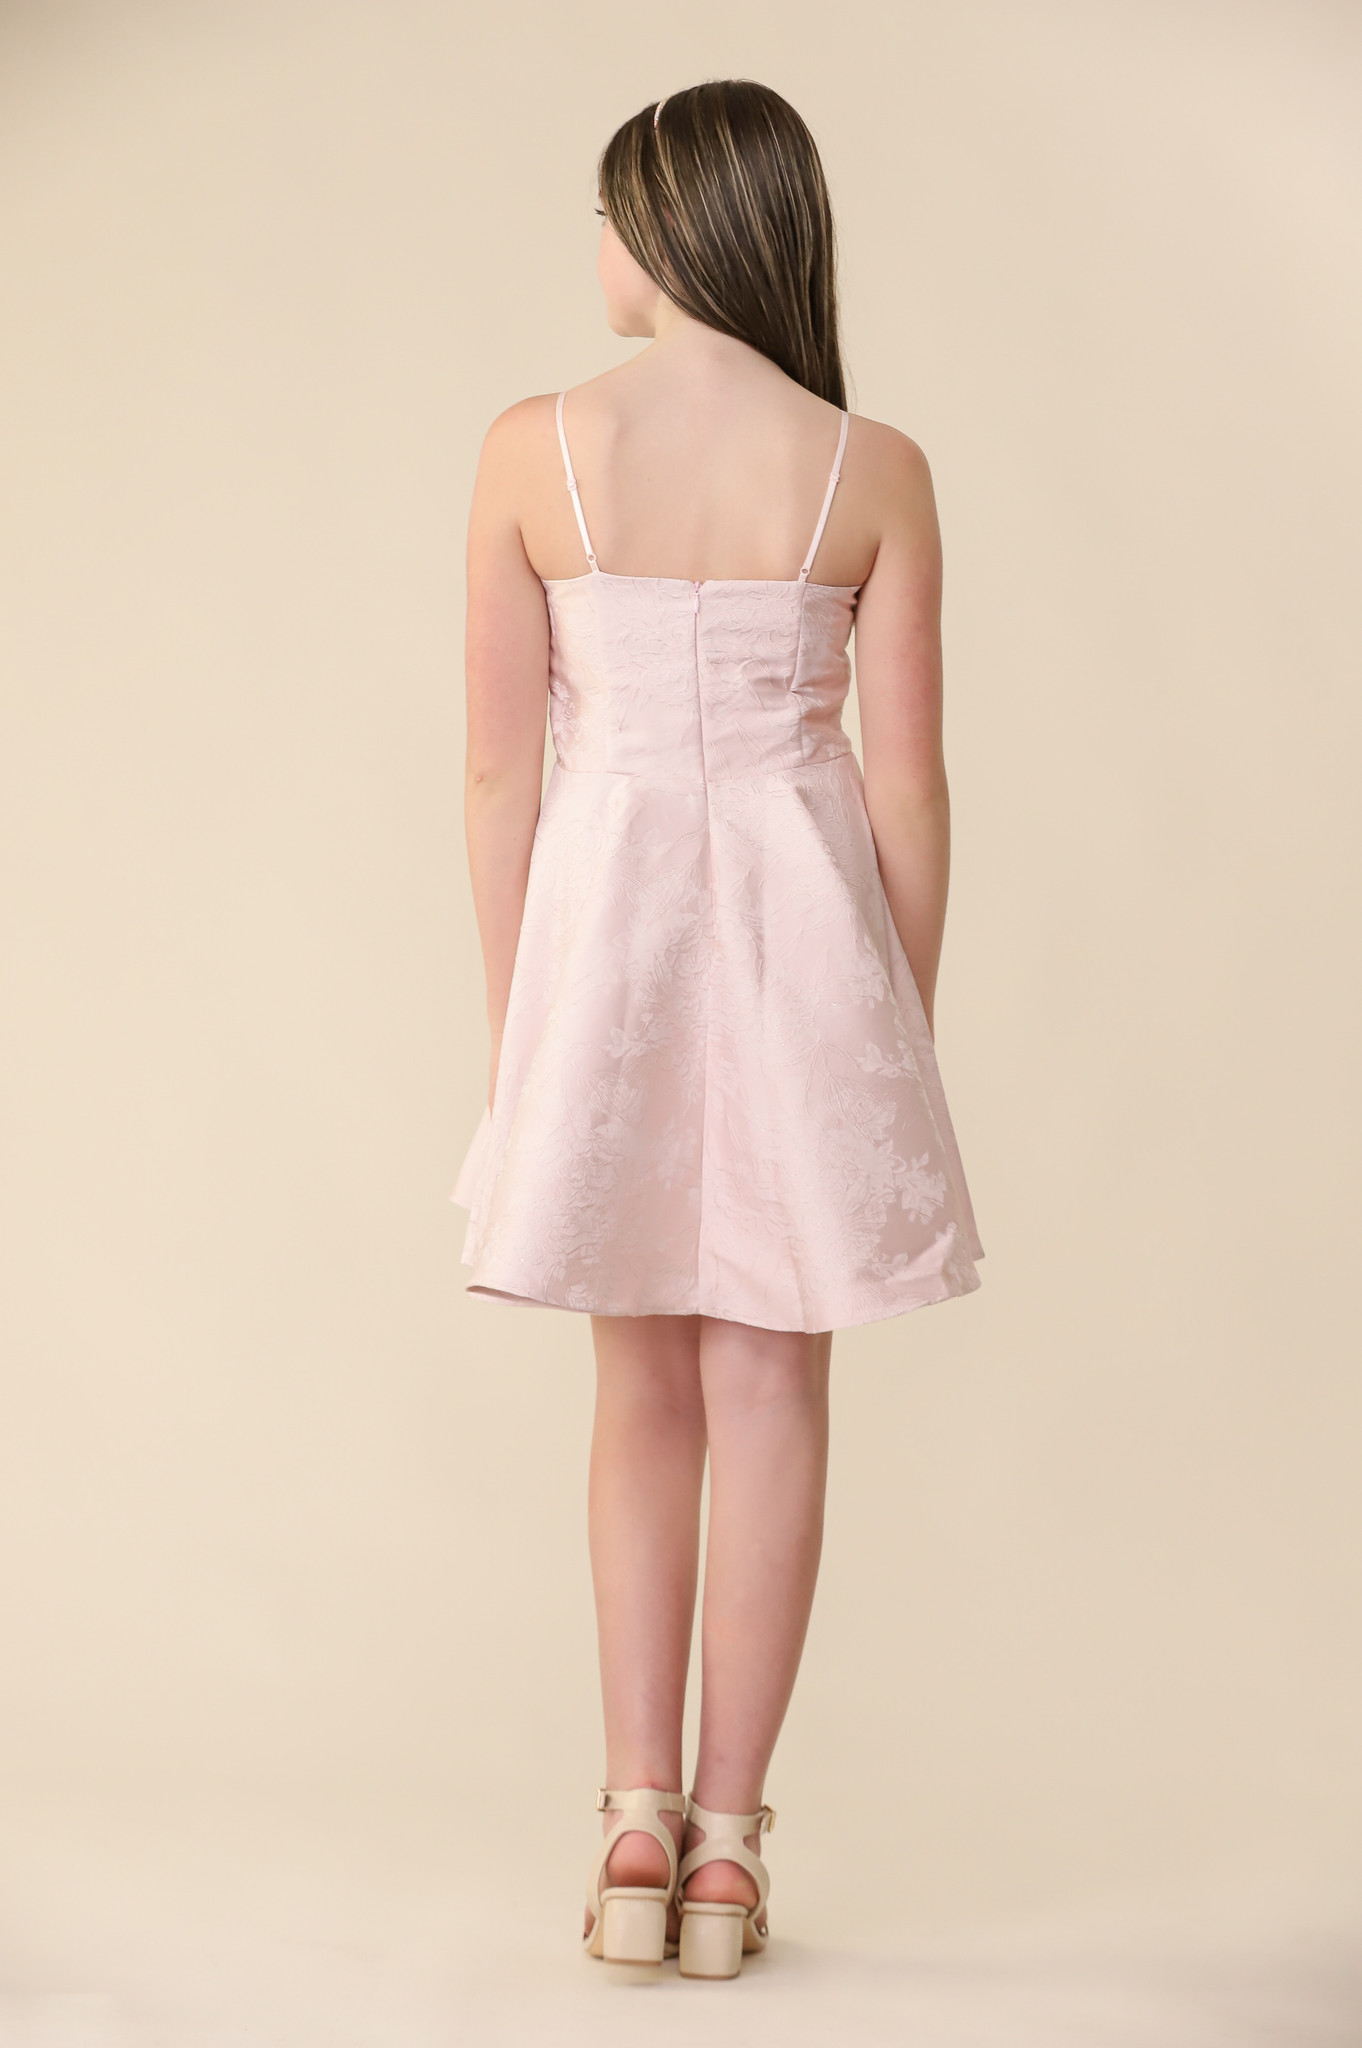 Blush Floral Party Dress in Longer Length with Belt.